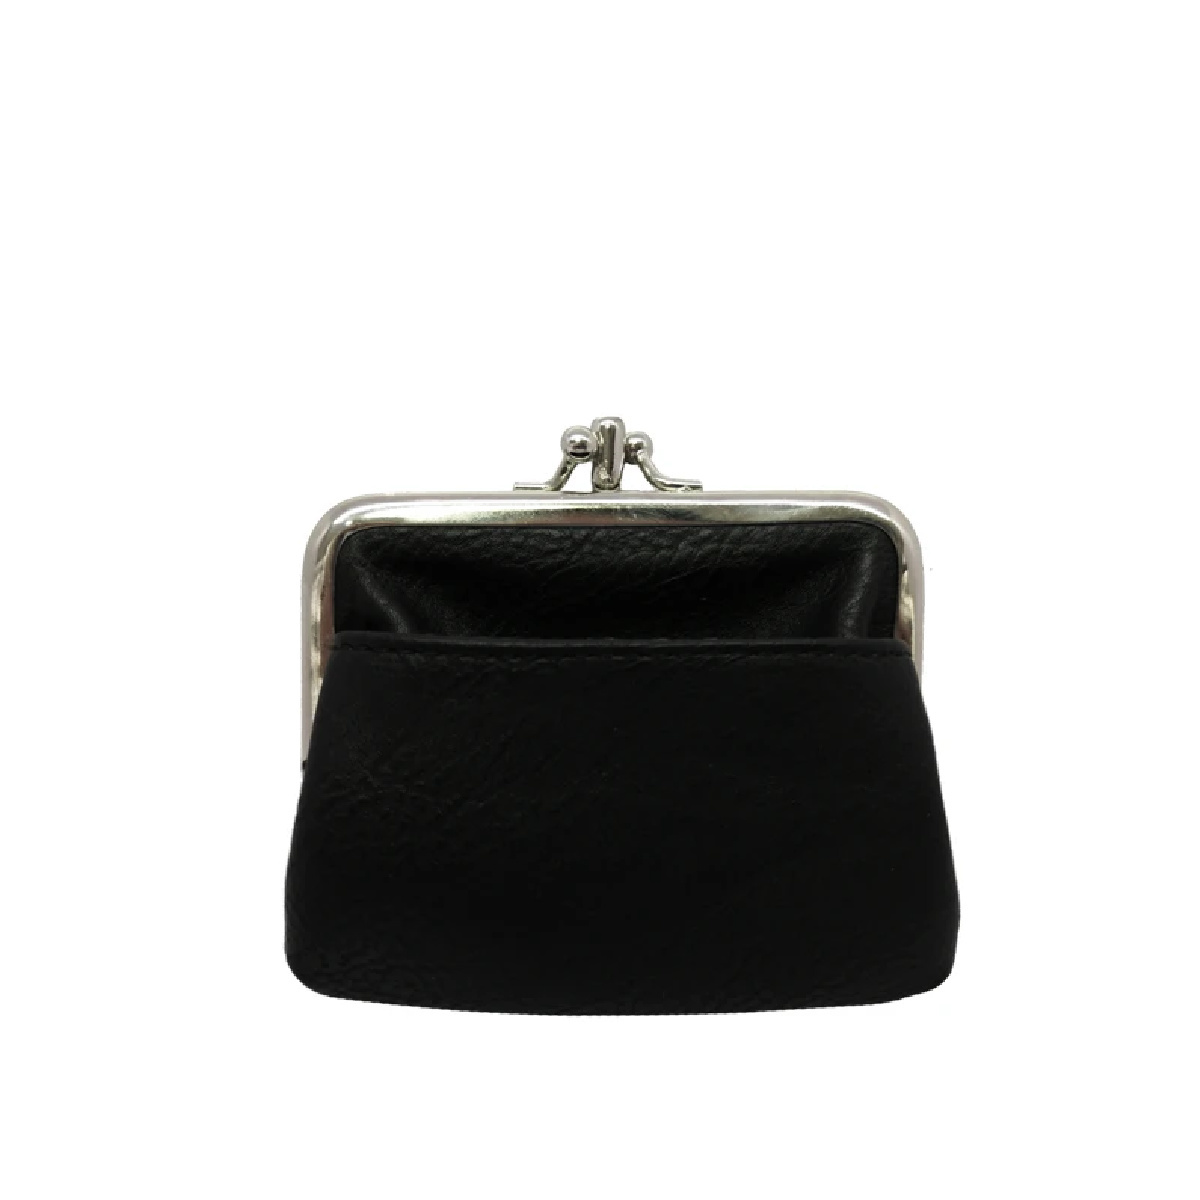 K. Carroll K. Carroll Blake Coin Purse